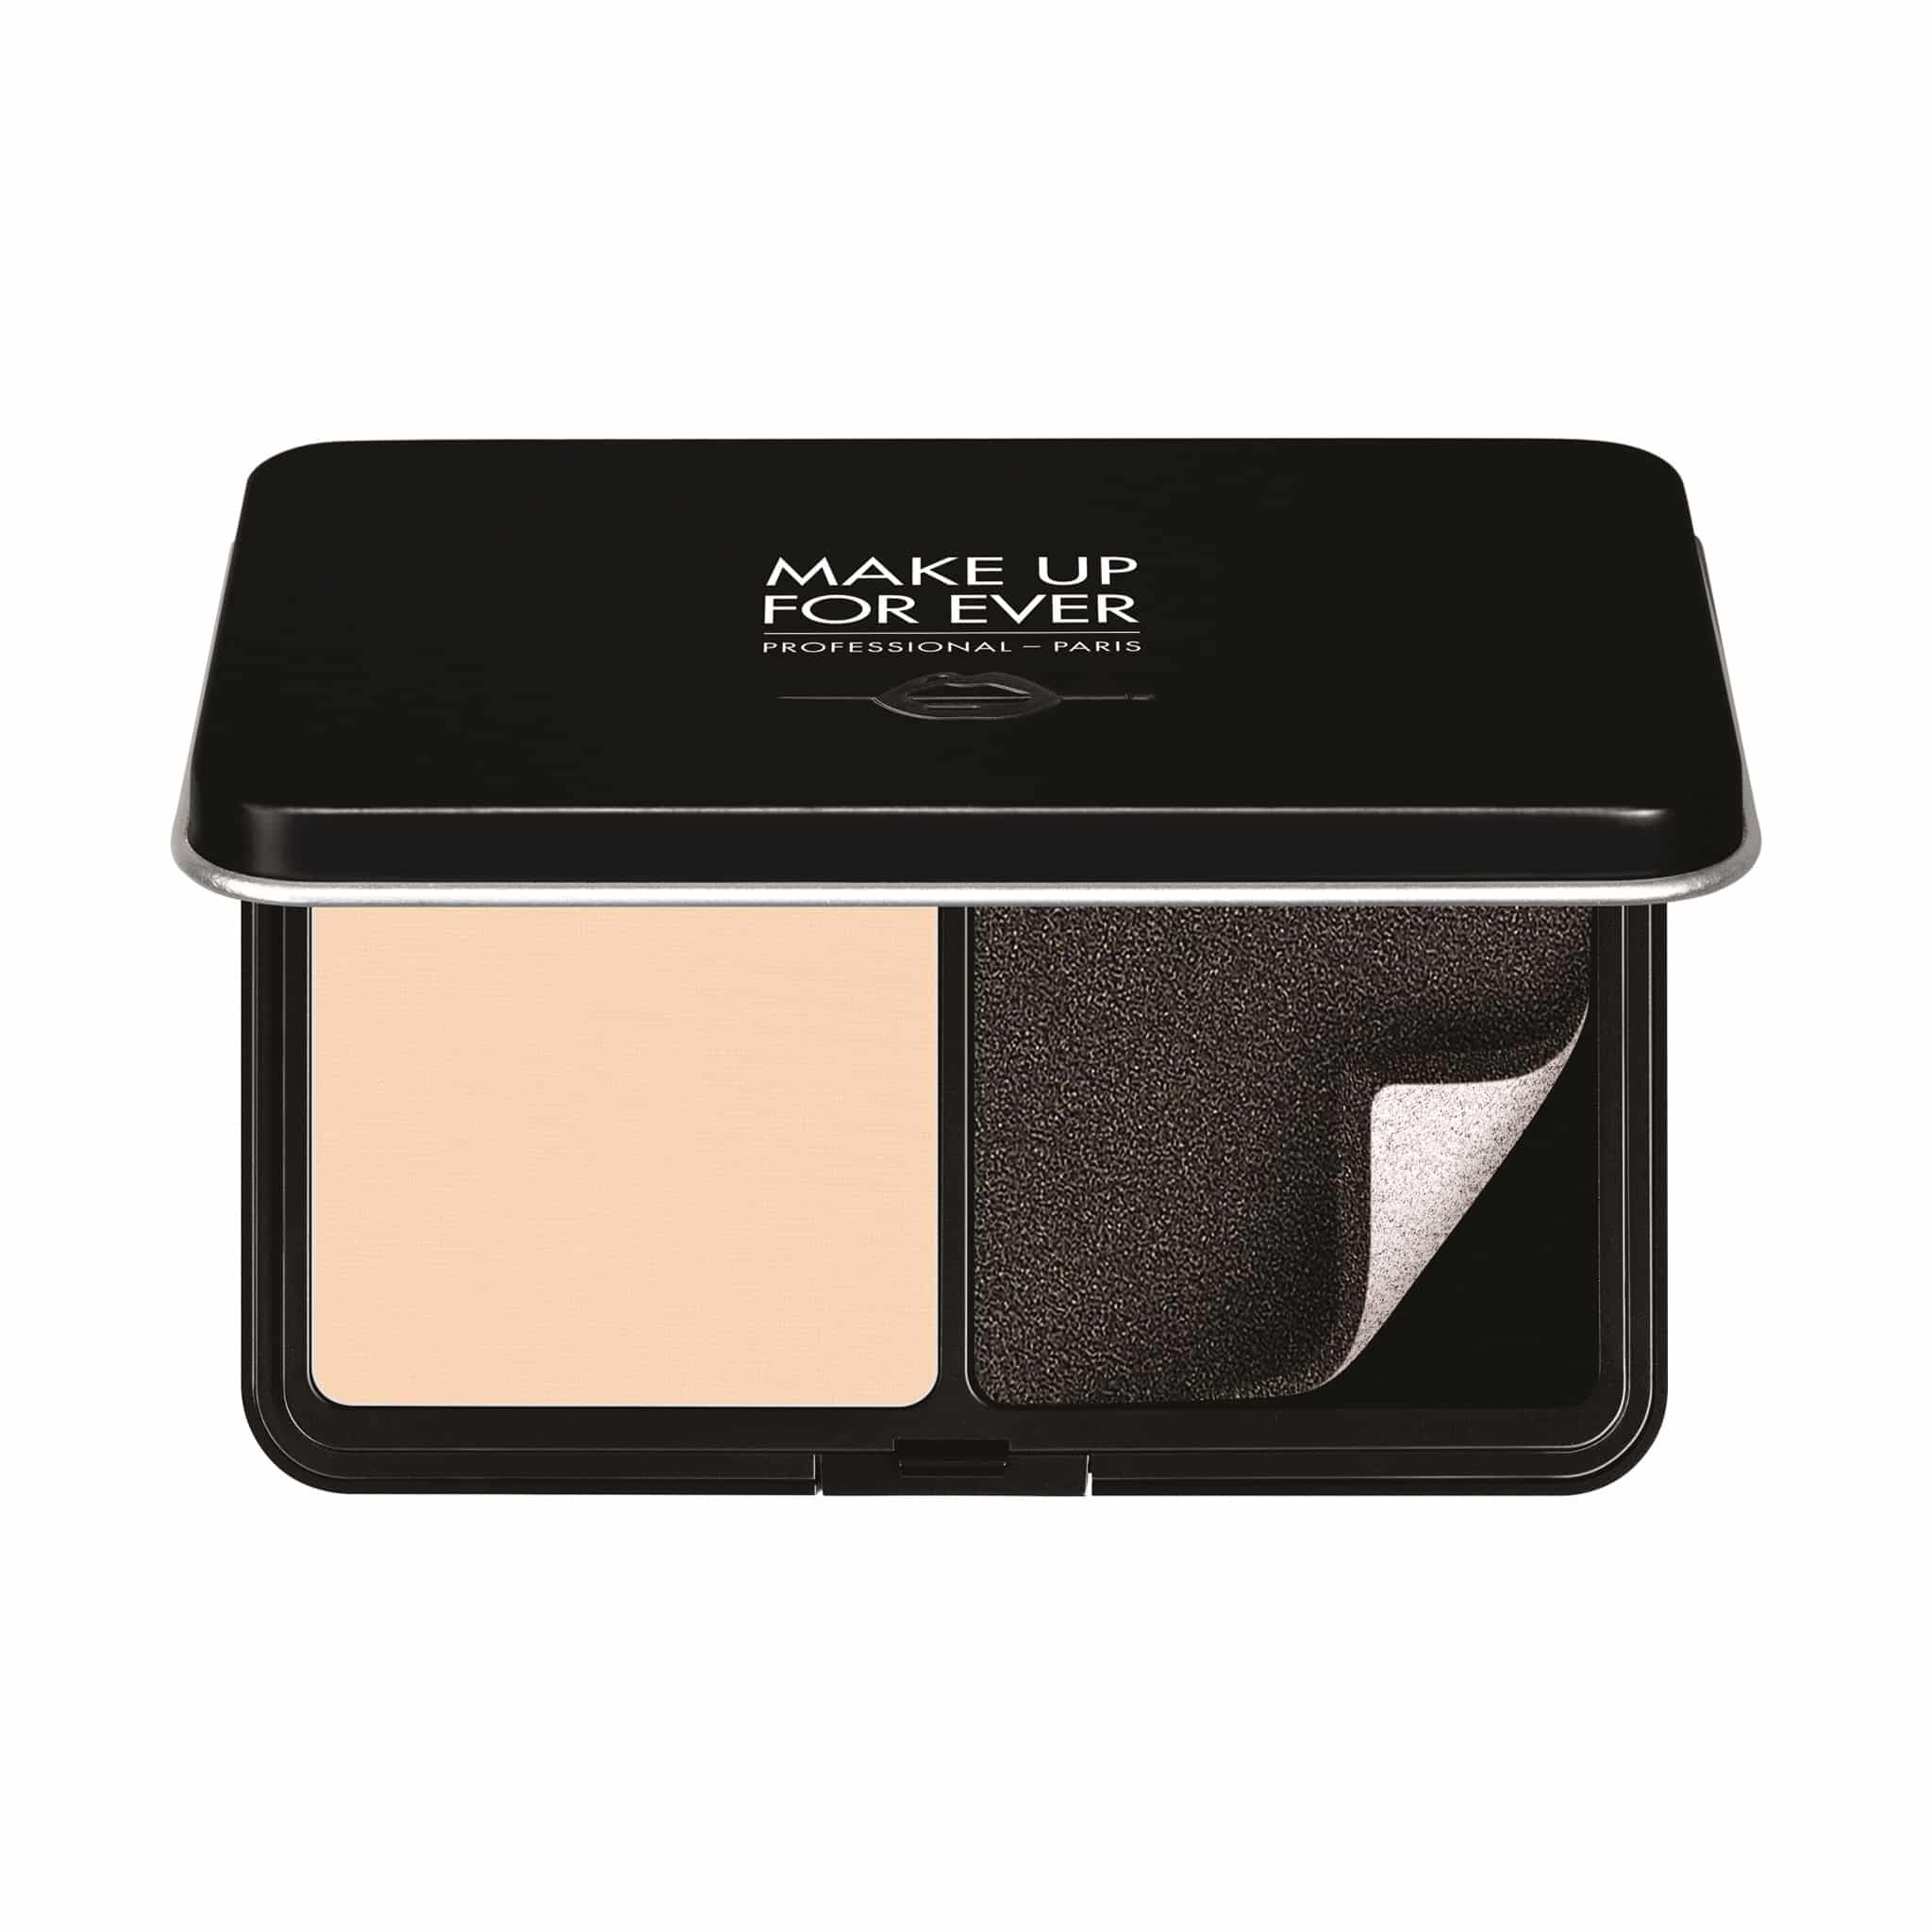 Make-Up-For-Ever-Matte-Velvet-Skin-Powder-Foundation